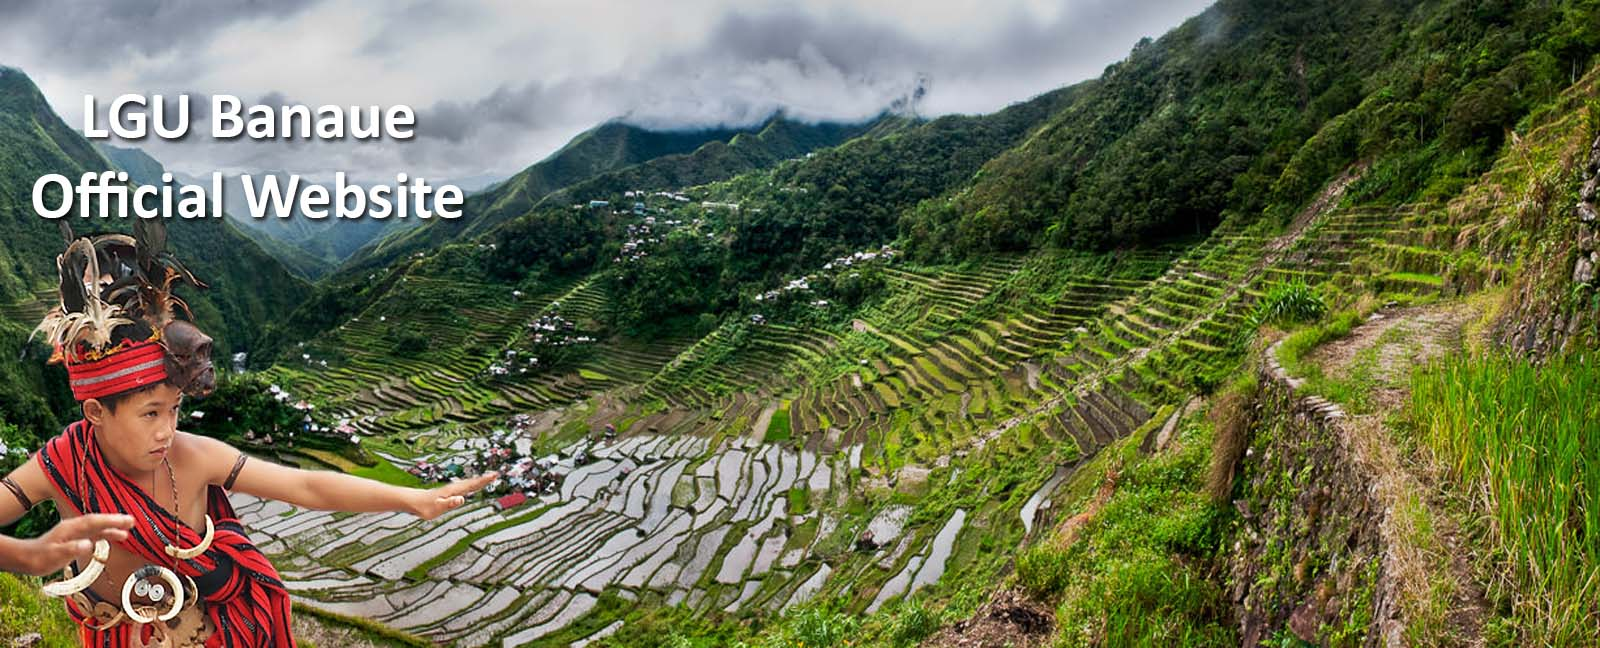 Local Government of Banaue